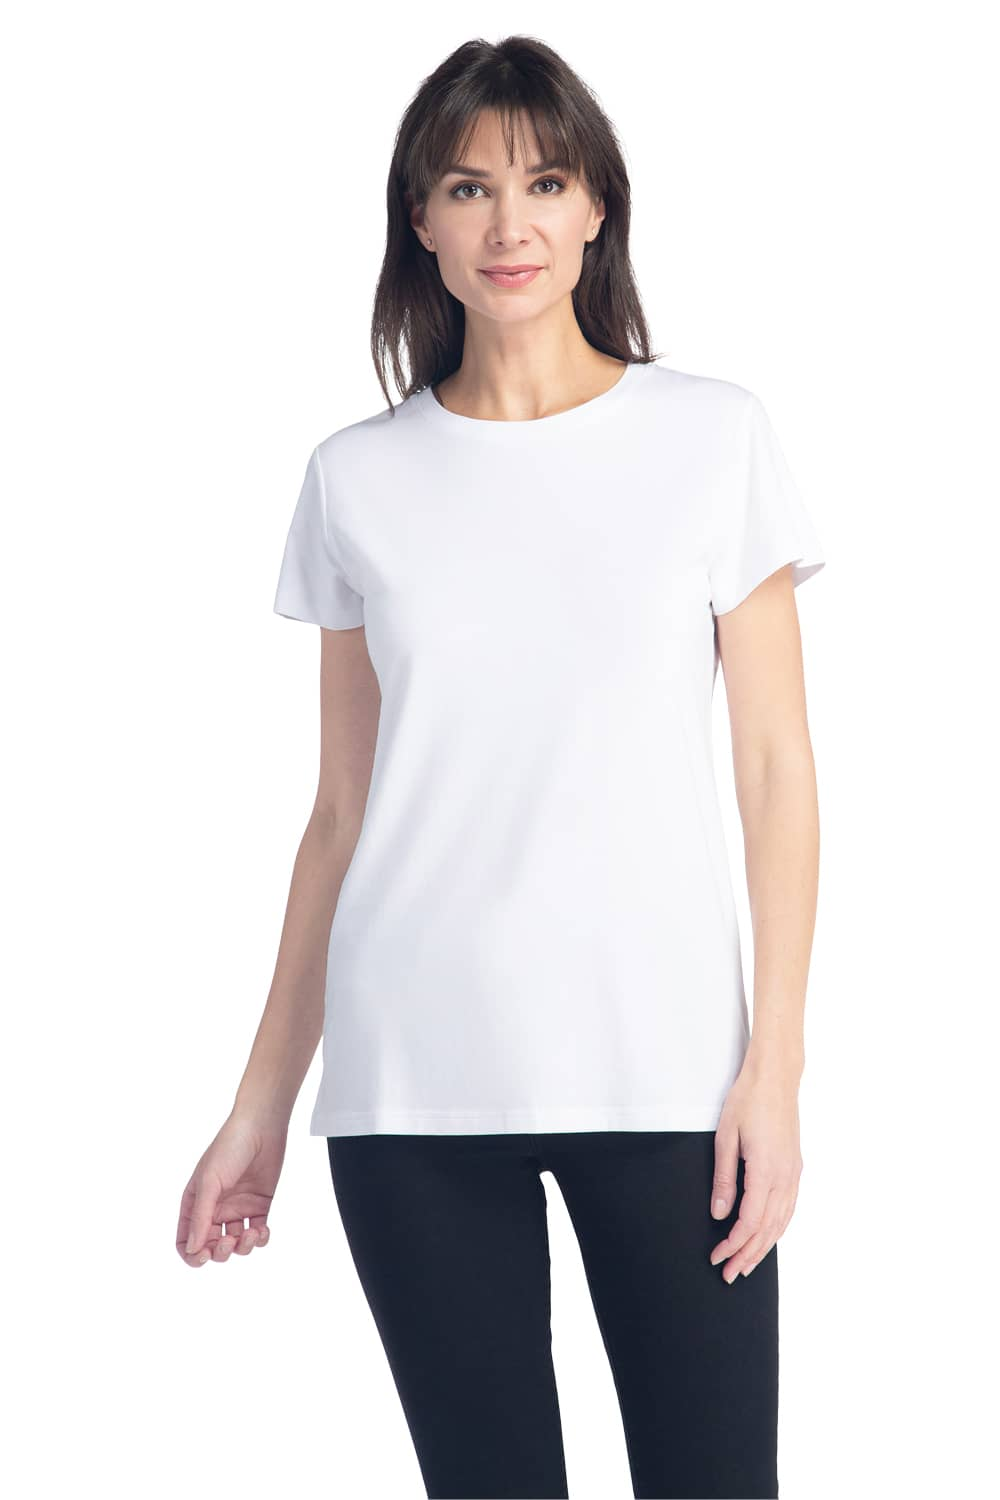 Women's Classic Fit EcoFabric™ Crew Neck Tee - Fishers Finery